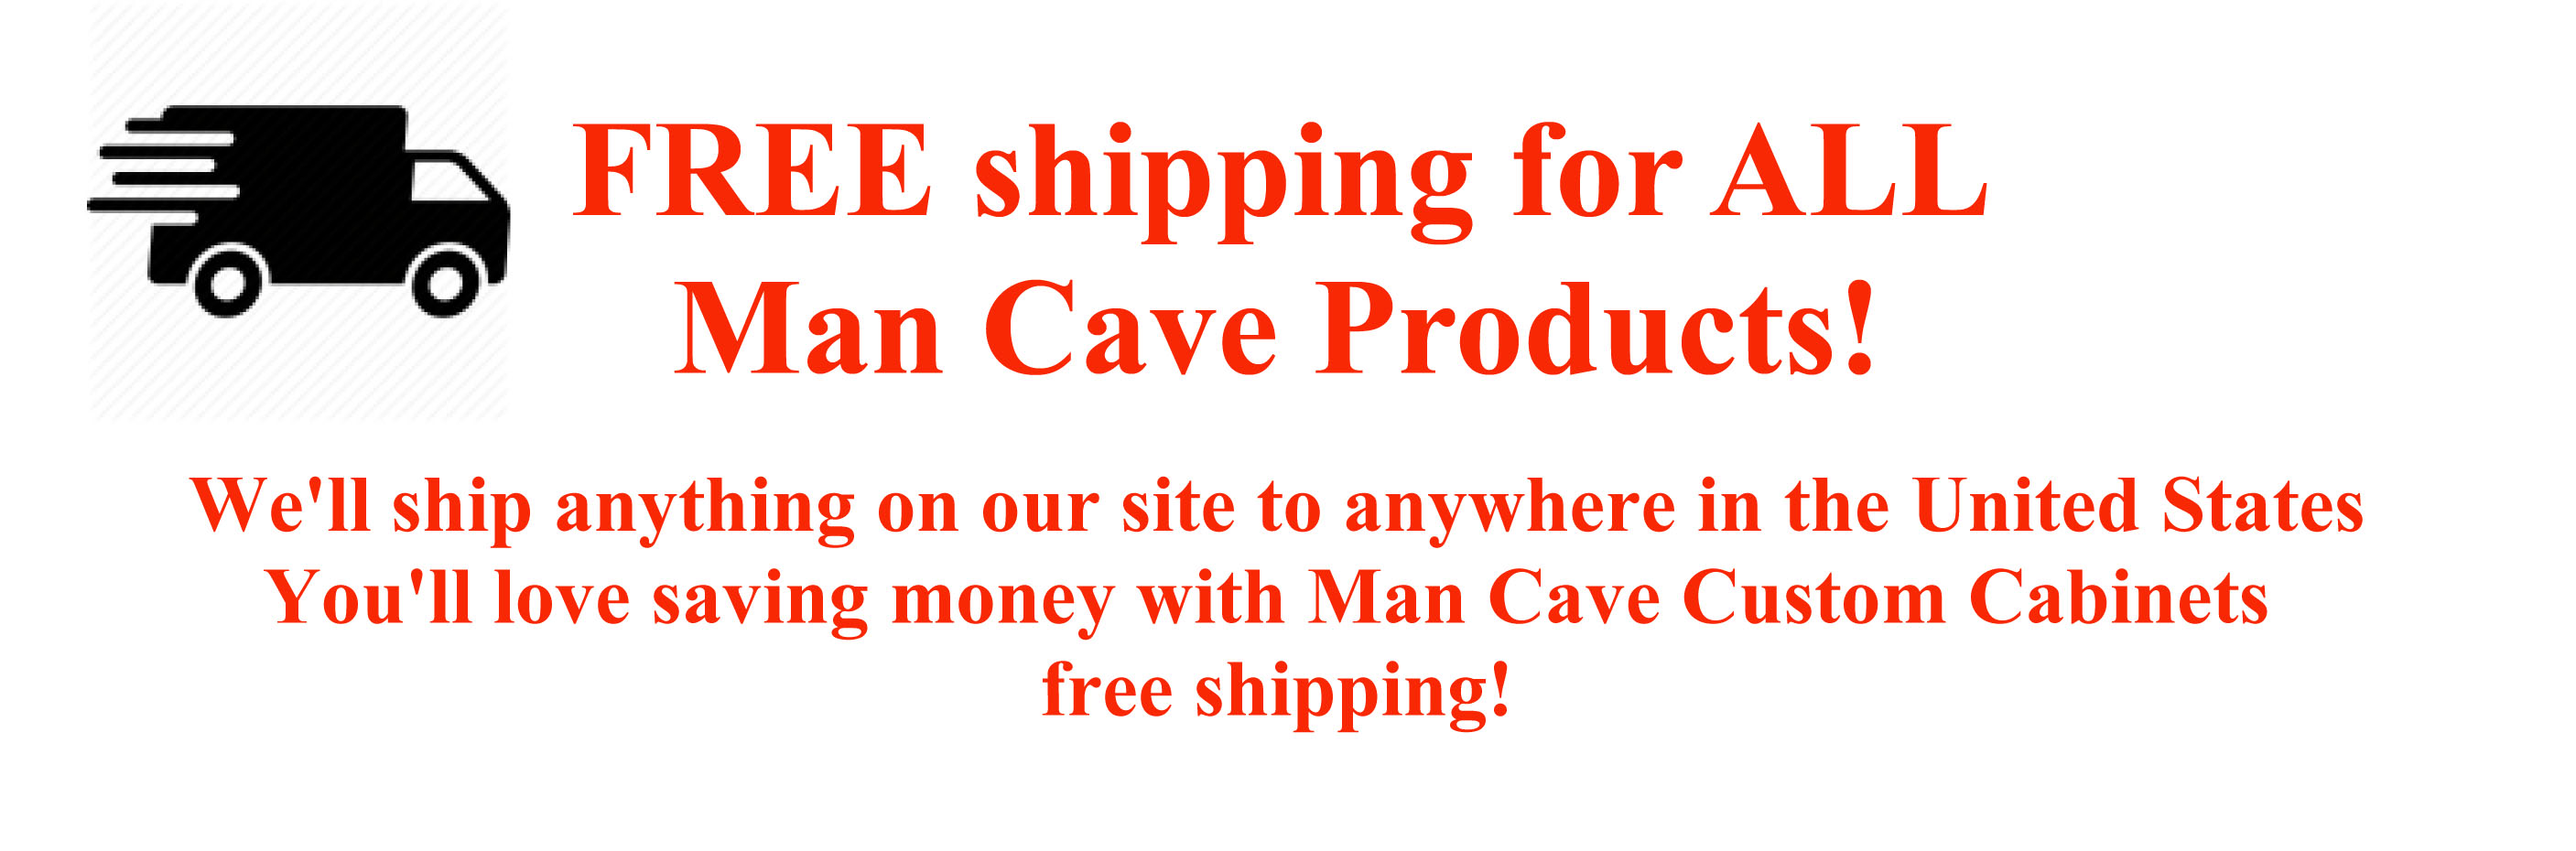 free-shipping-for-all.jpg